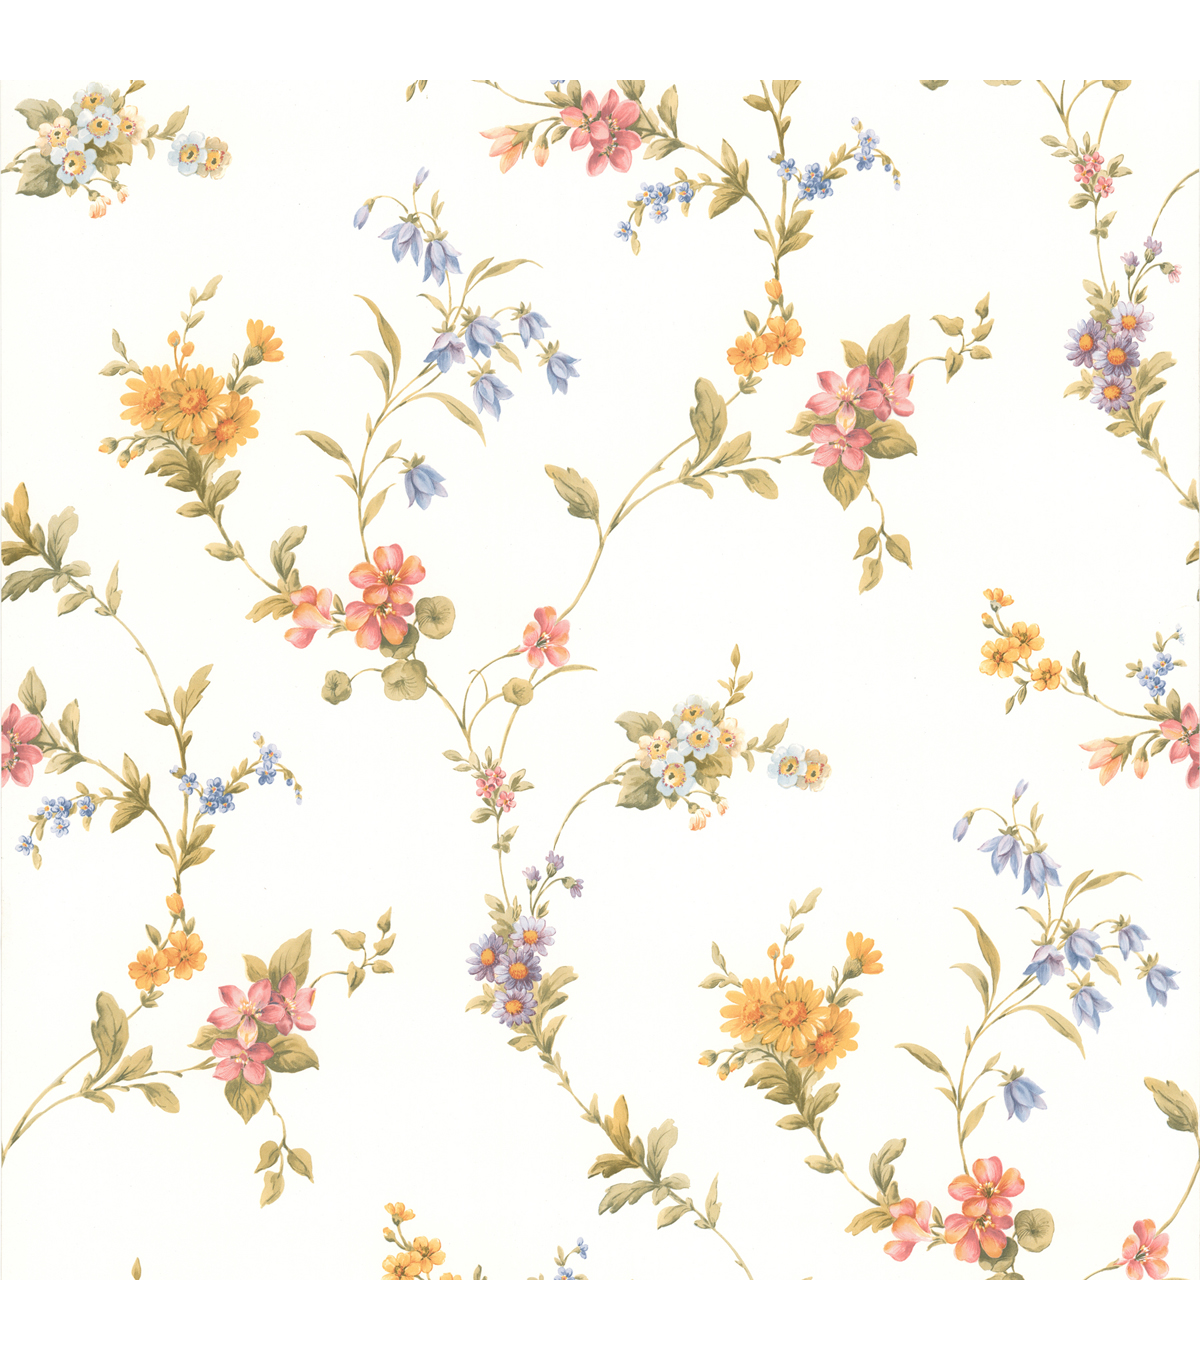 Heidi Peach Floral Trail Wallpaper